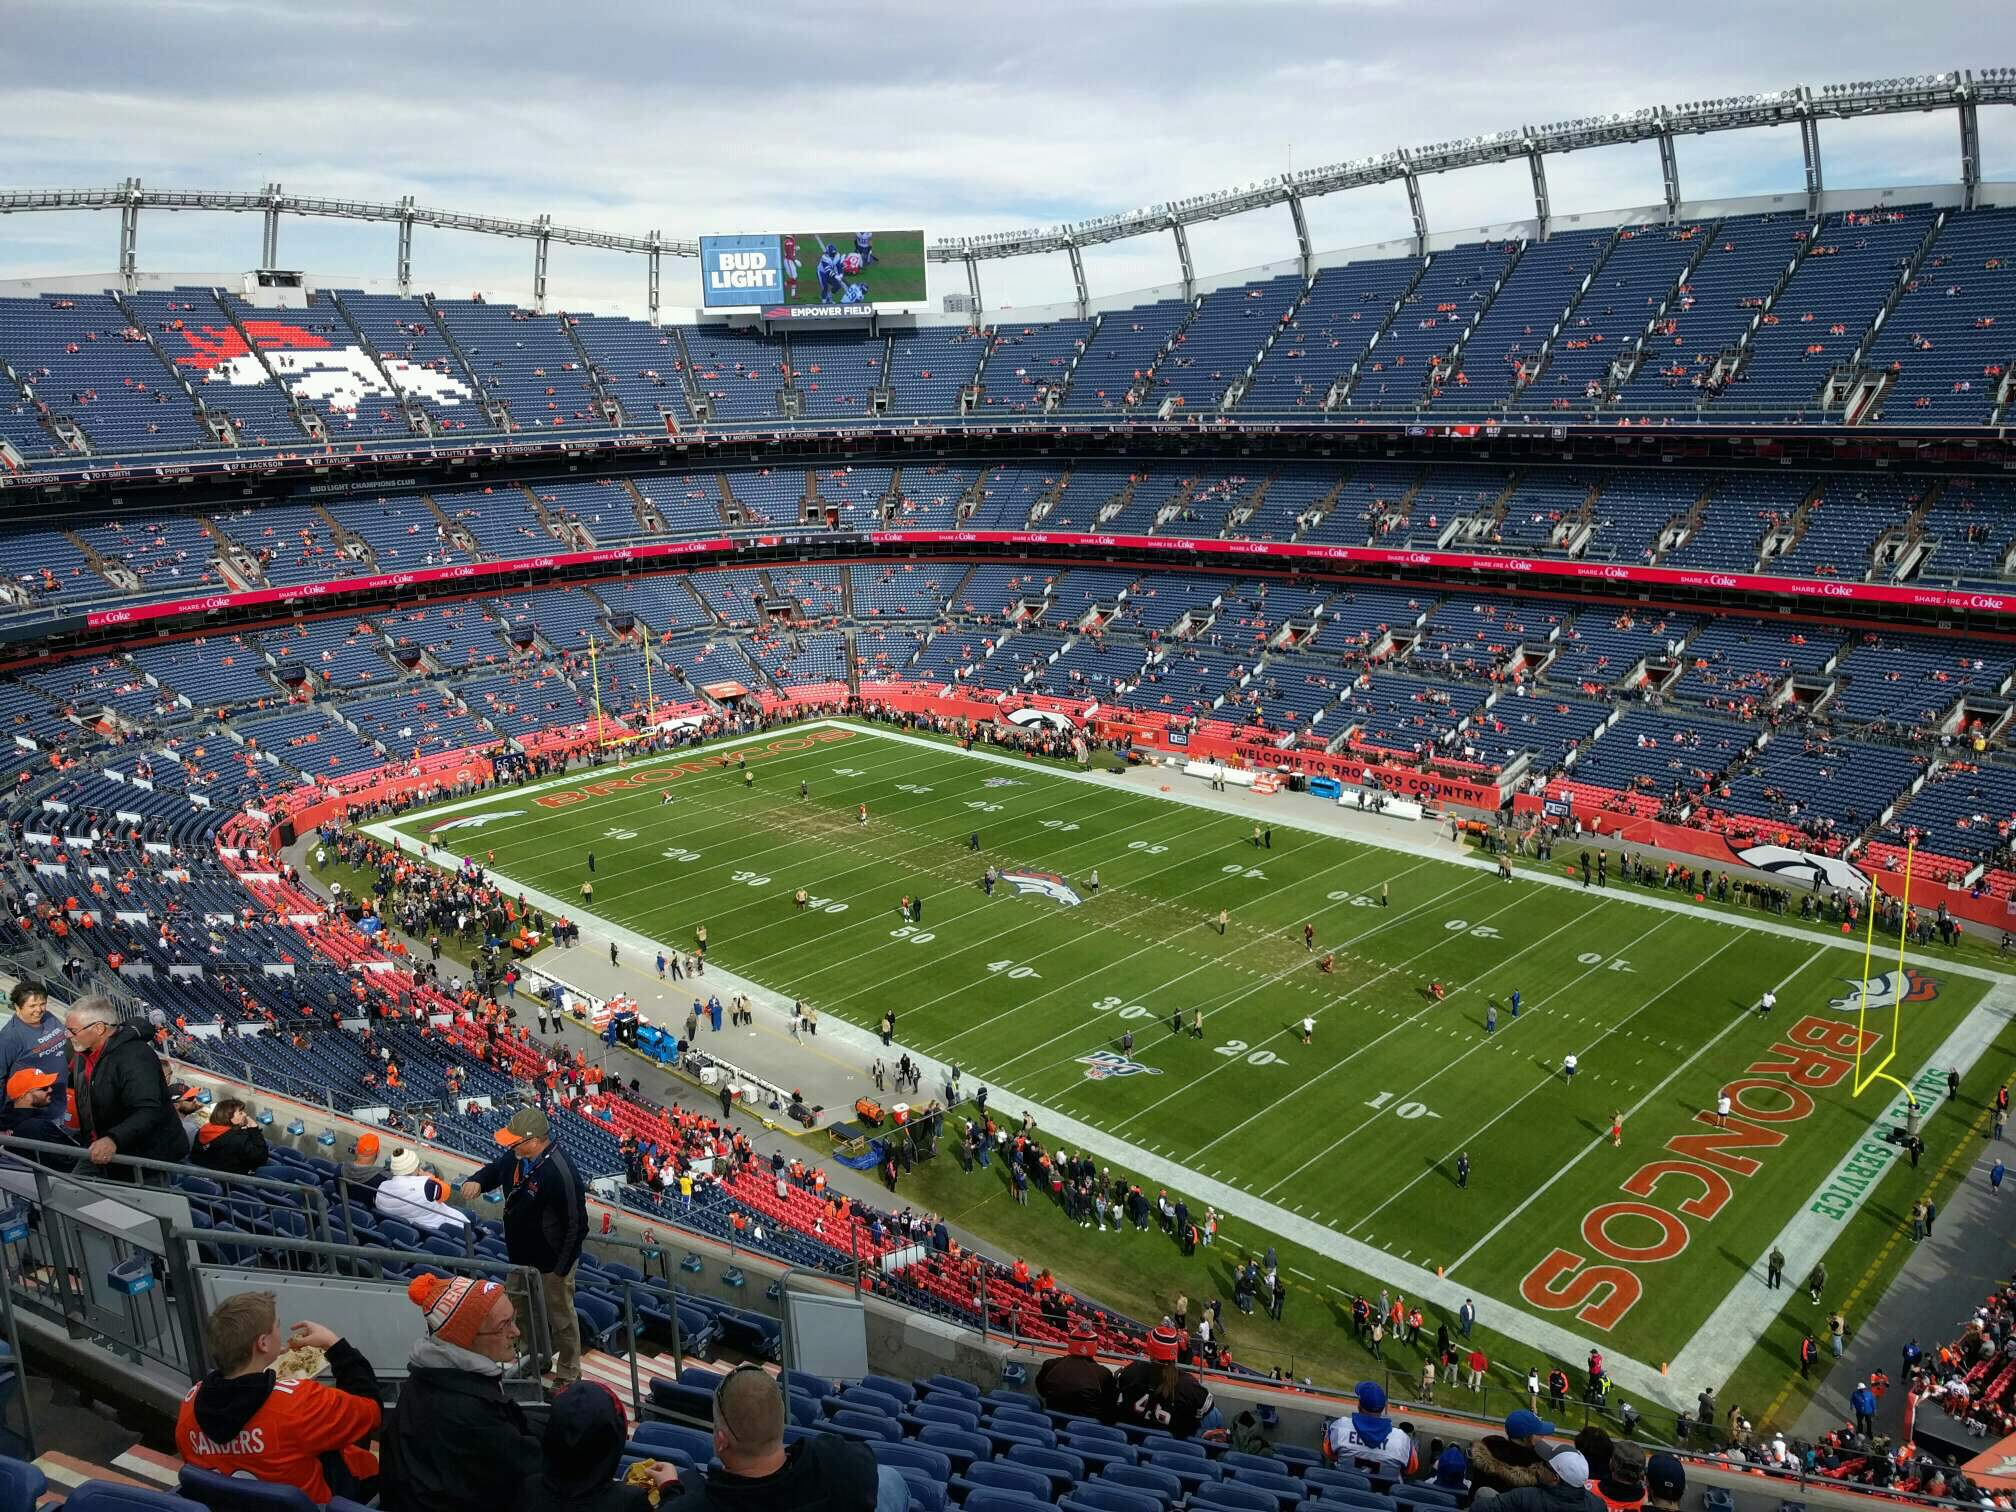 Empower Field at Mile High Stadium Section 502 Row 12 Seat 13